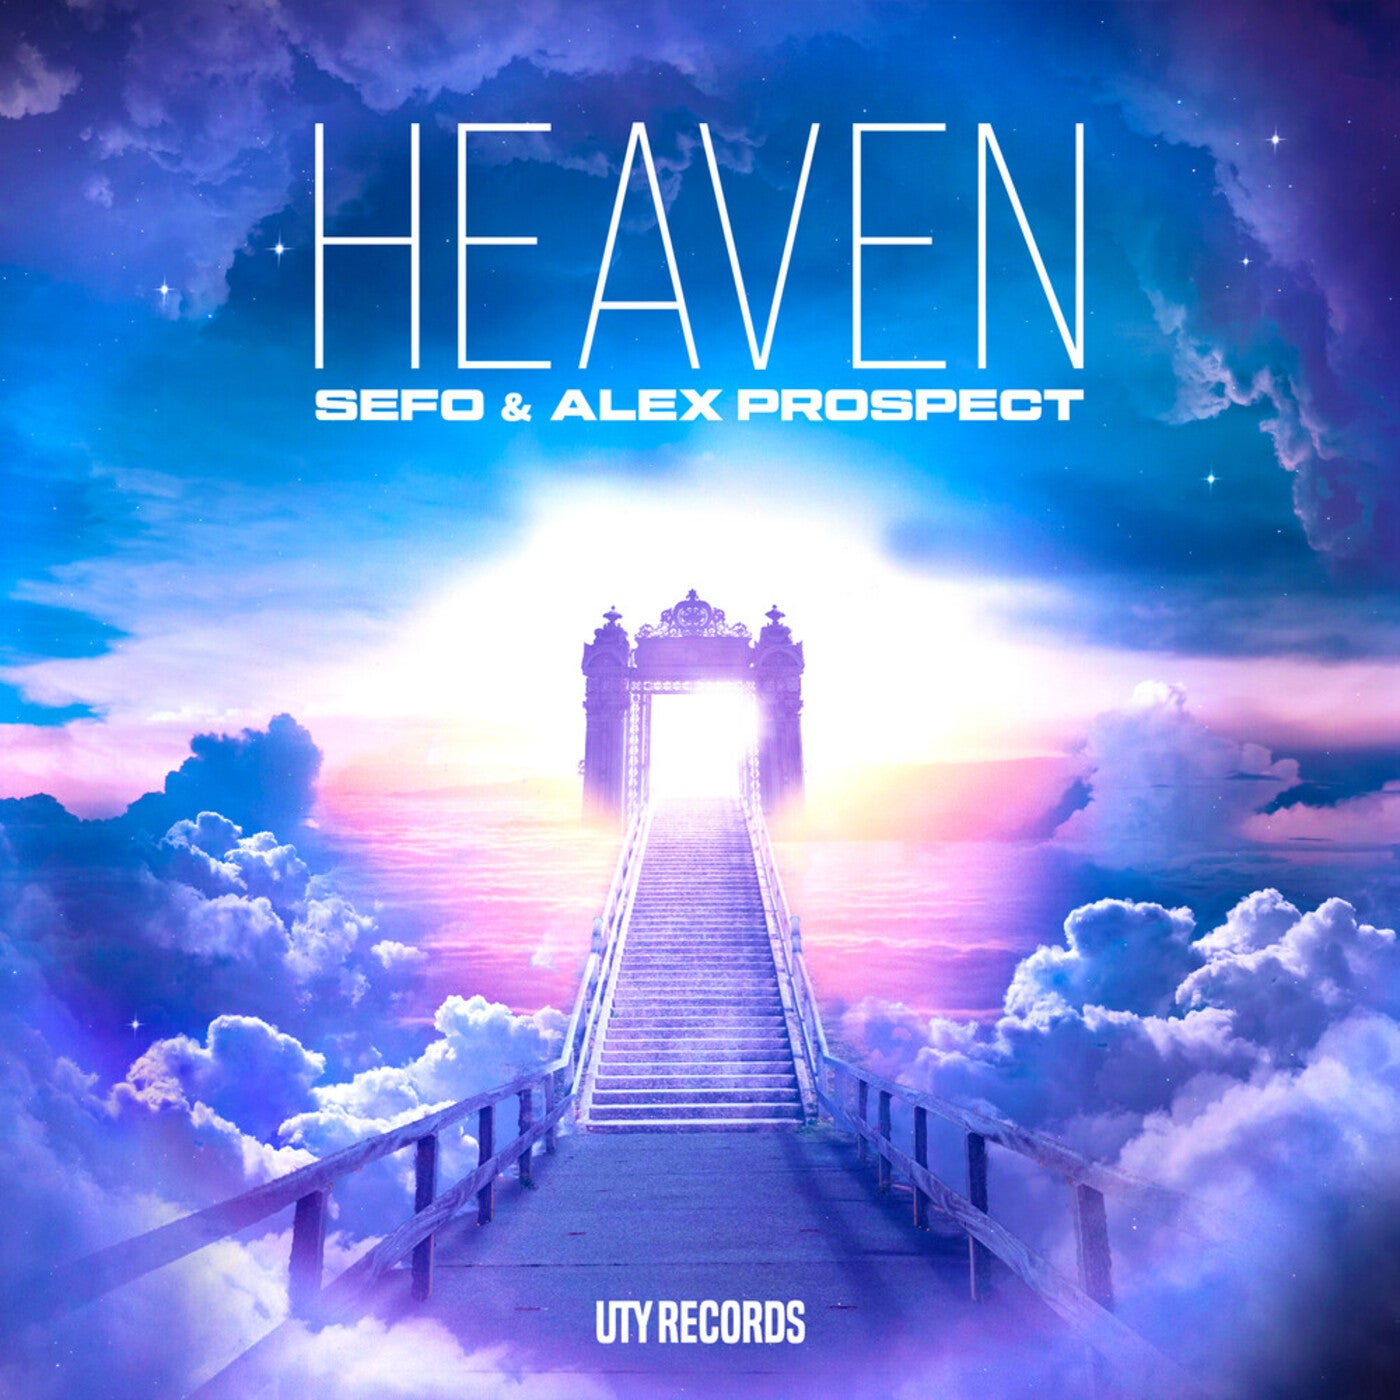 HEAVEN (Extended Mix)